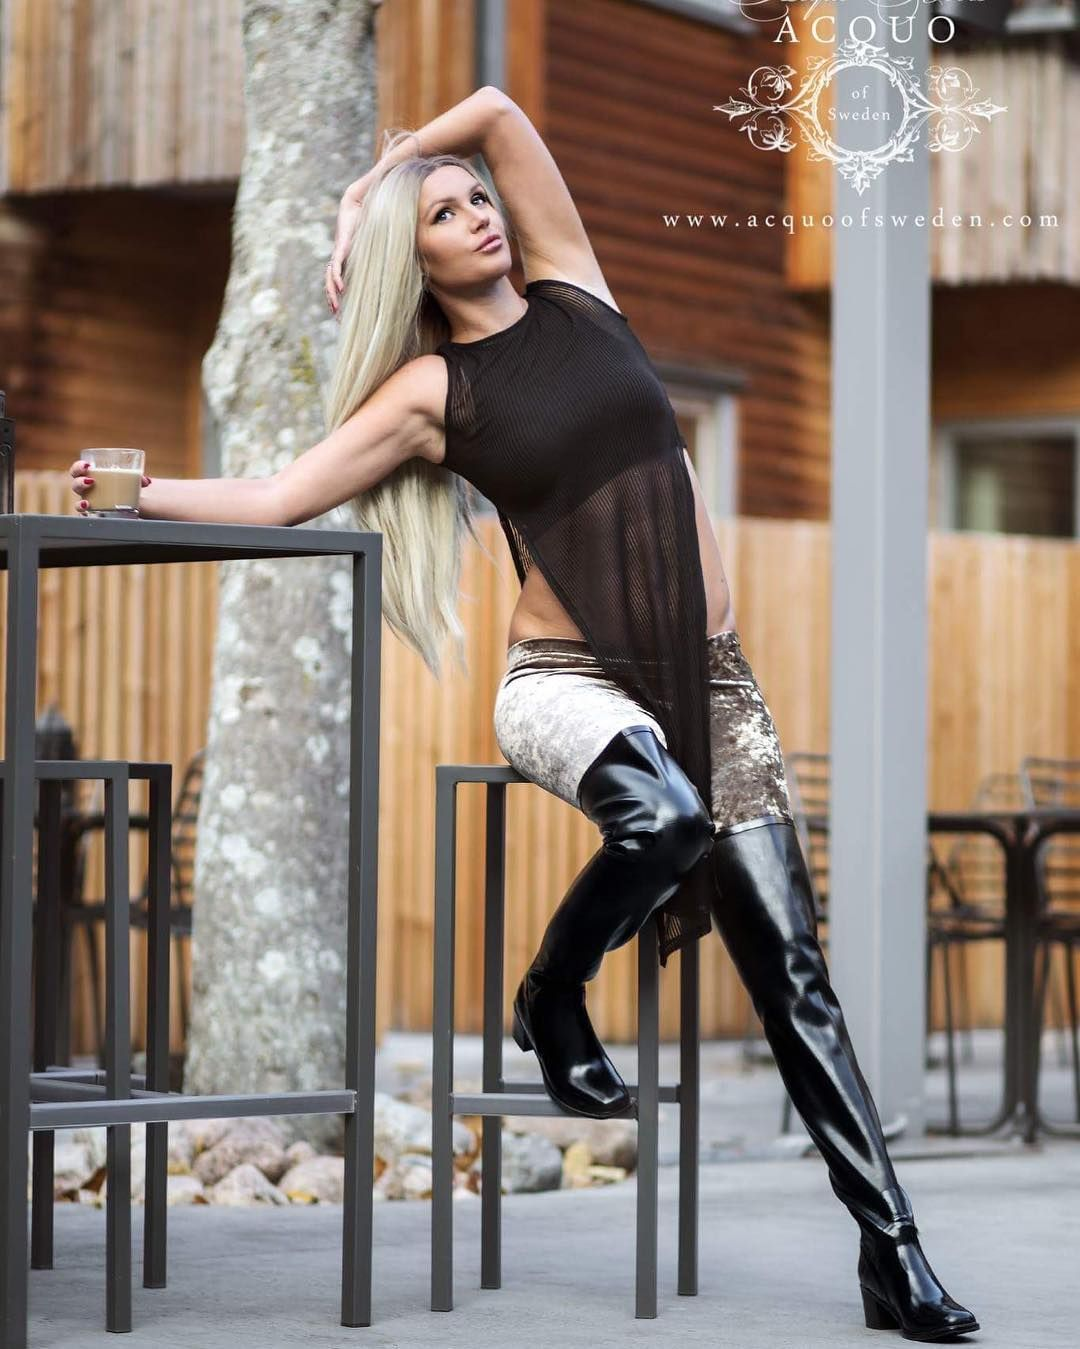 Stunning Rubber Boots And Fashion Handbag Www Acquoofsweden